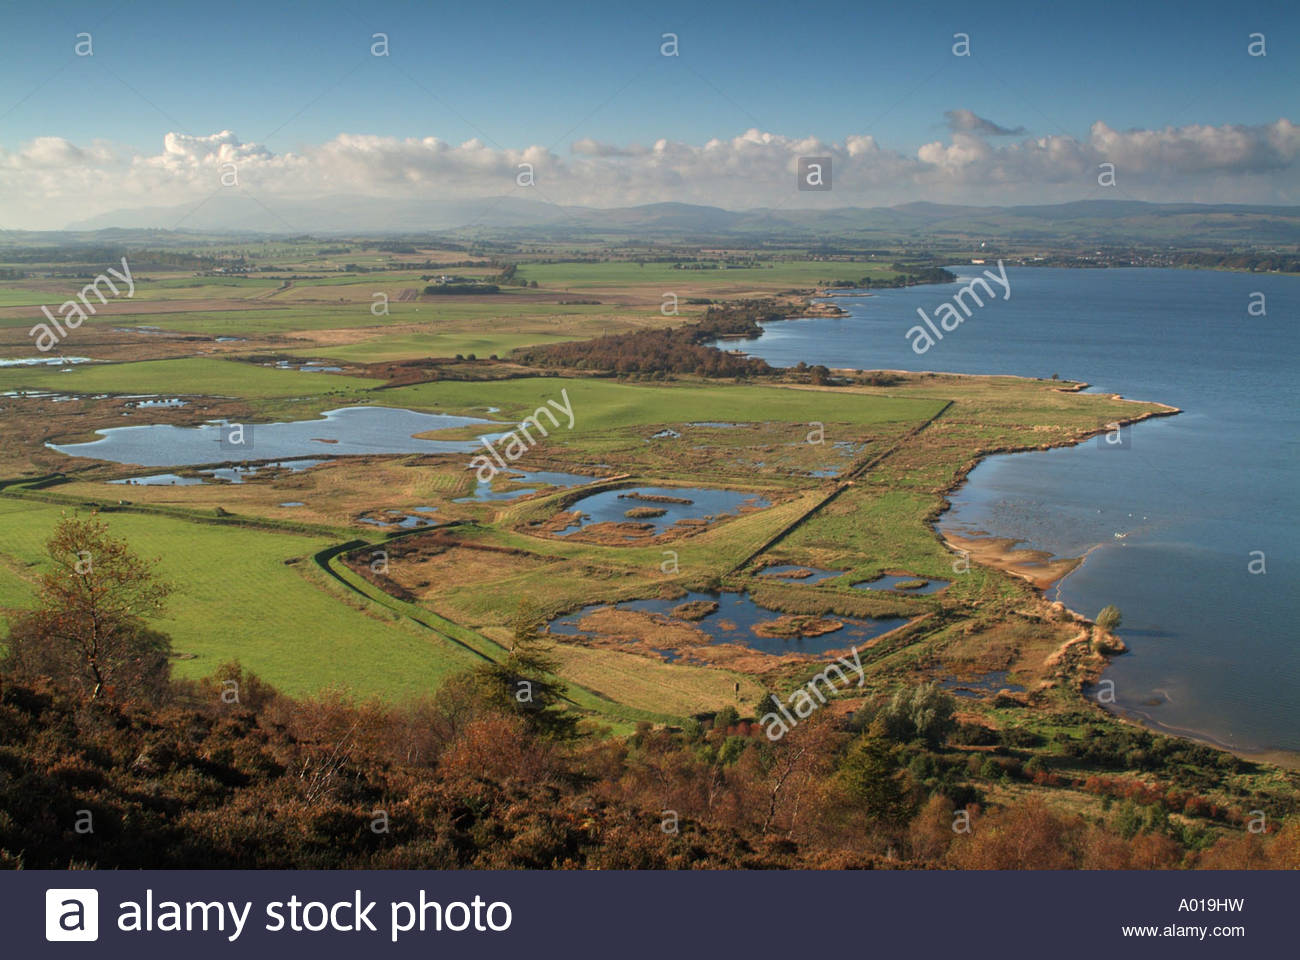 Vane Farm Nature Reserve Fife and Angus, The RSPB Vane Farm Nature Reserve and Loch Leven from the slopes ...